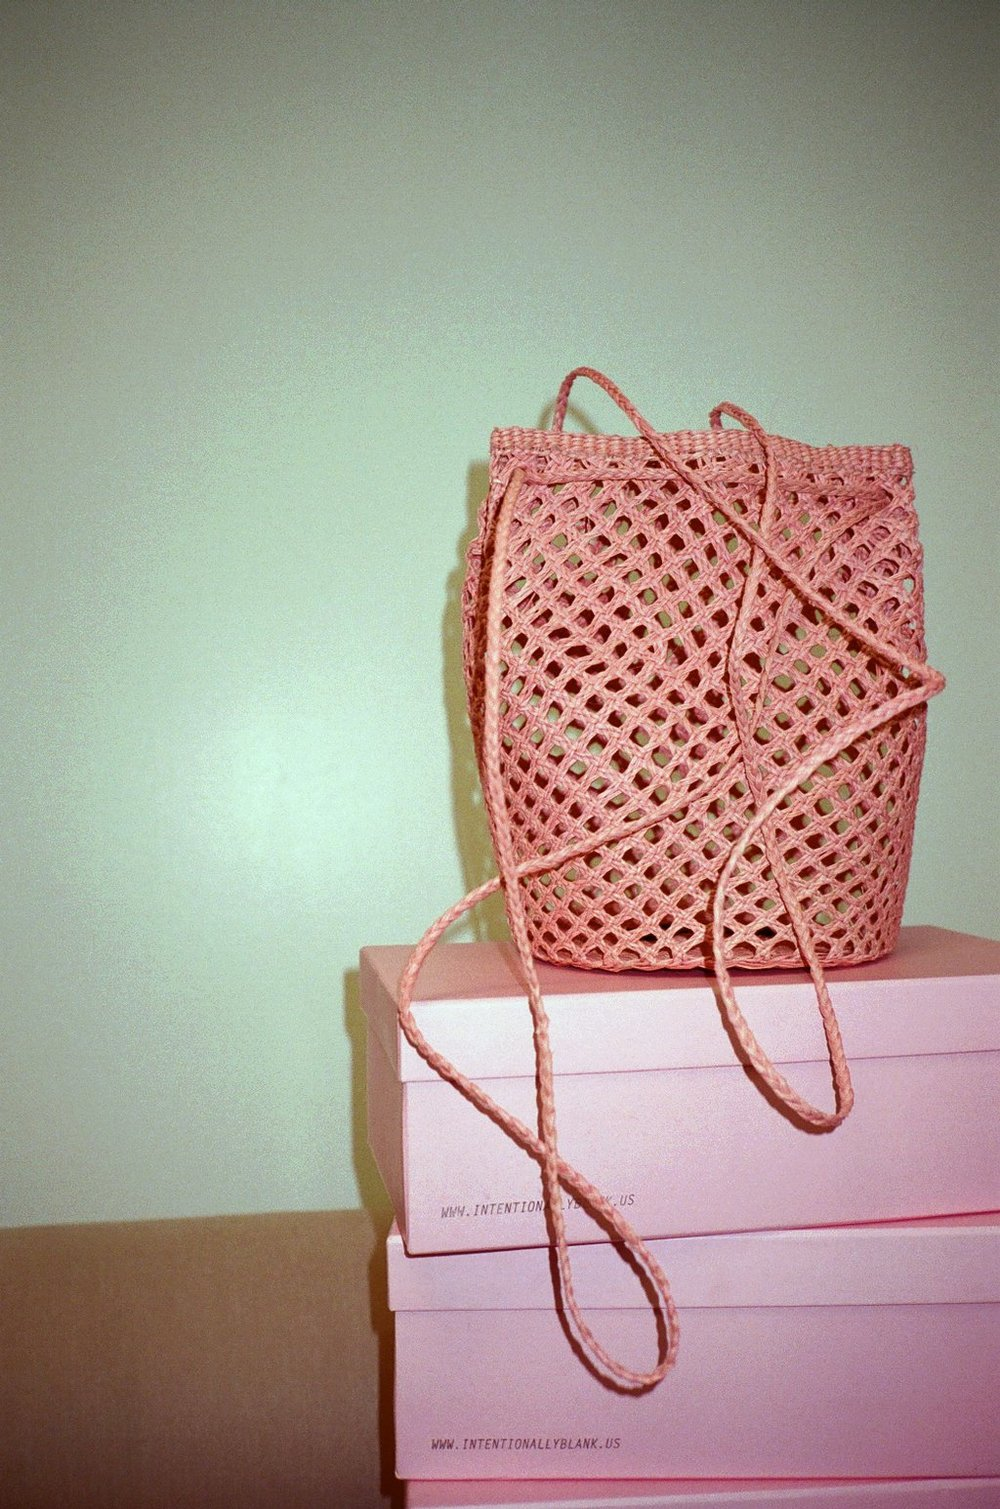 - TURI WOVEN SHOULDER BAG IN PALE ROSE / Artesano $160 available at Lisa Says Gah